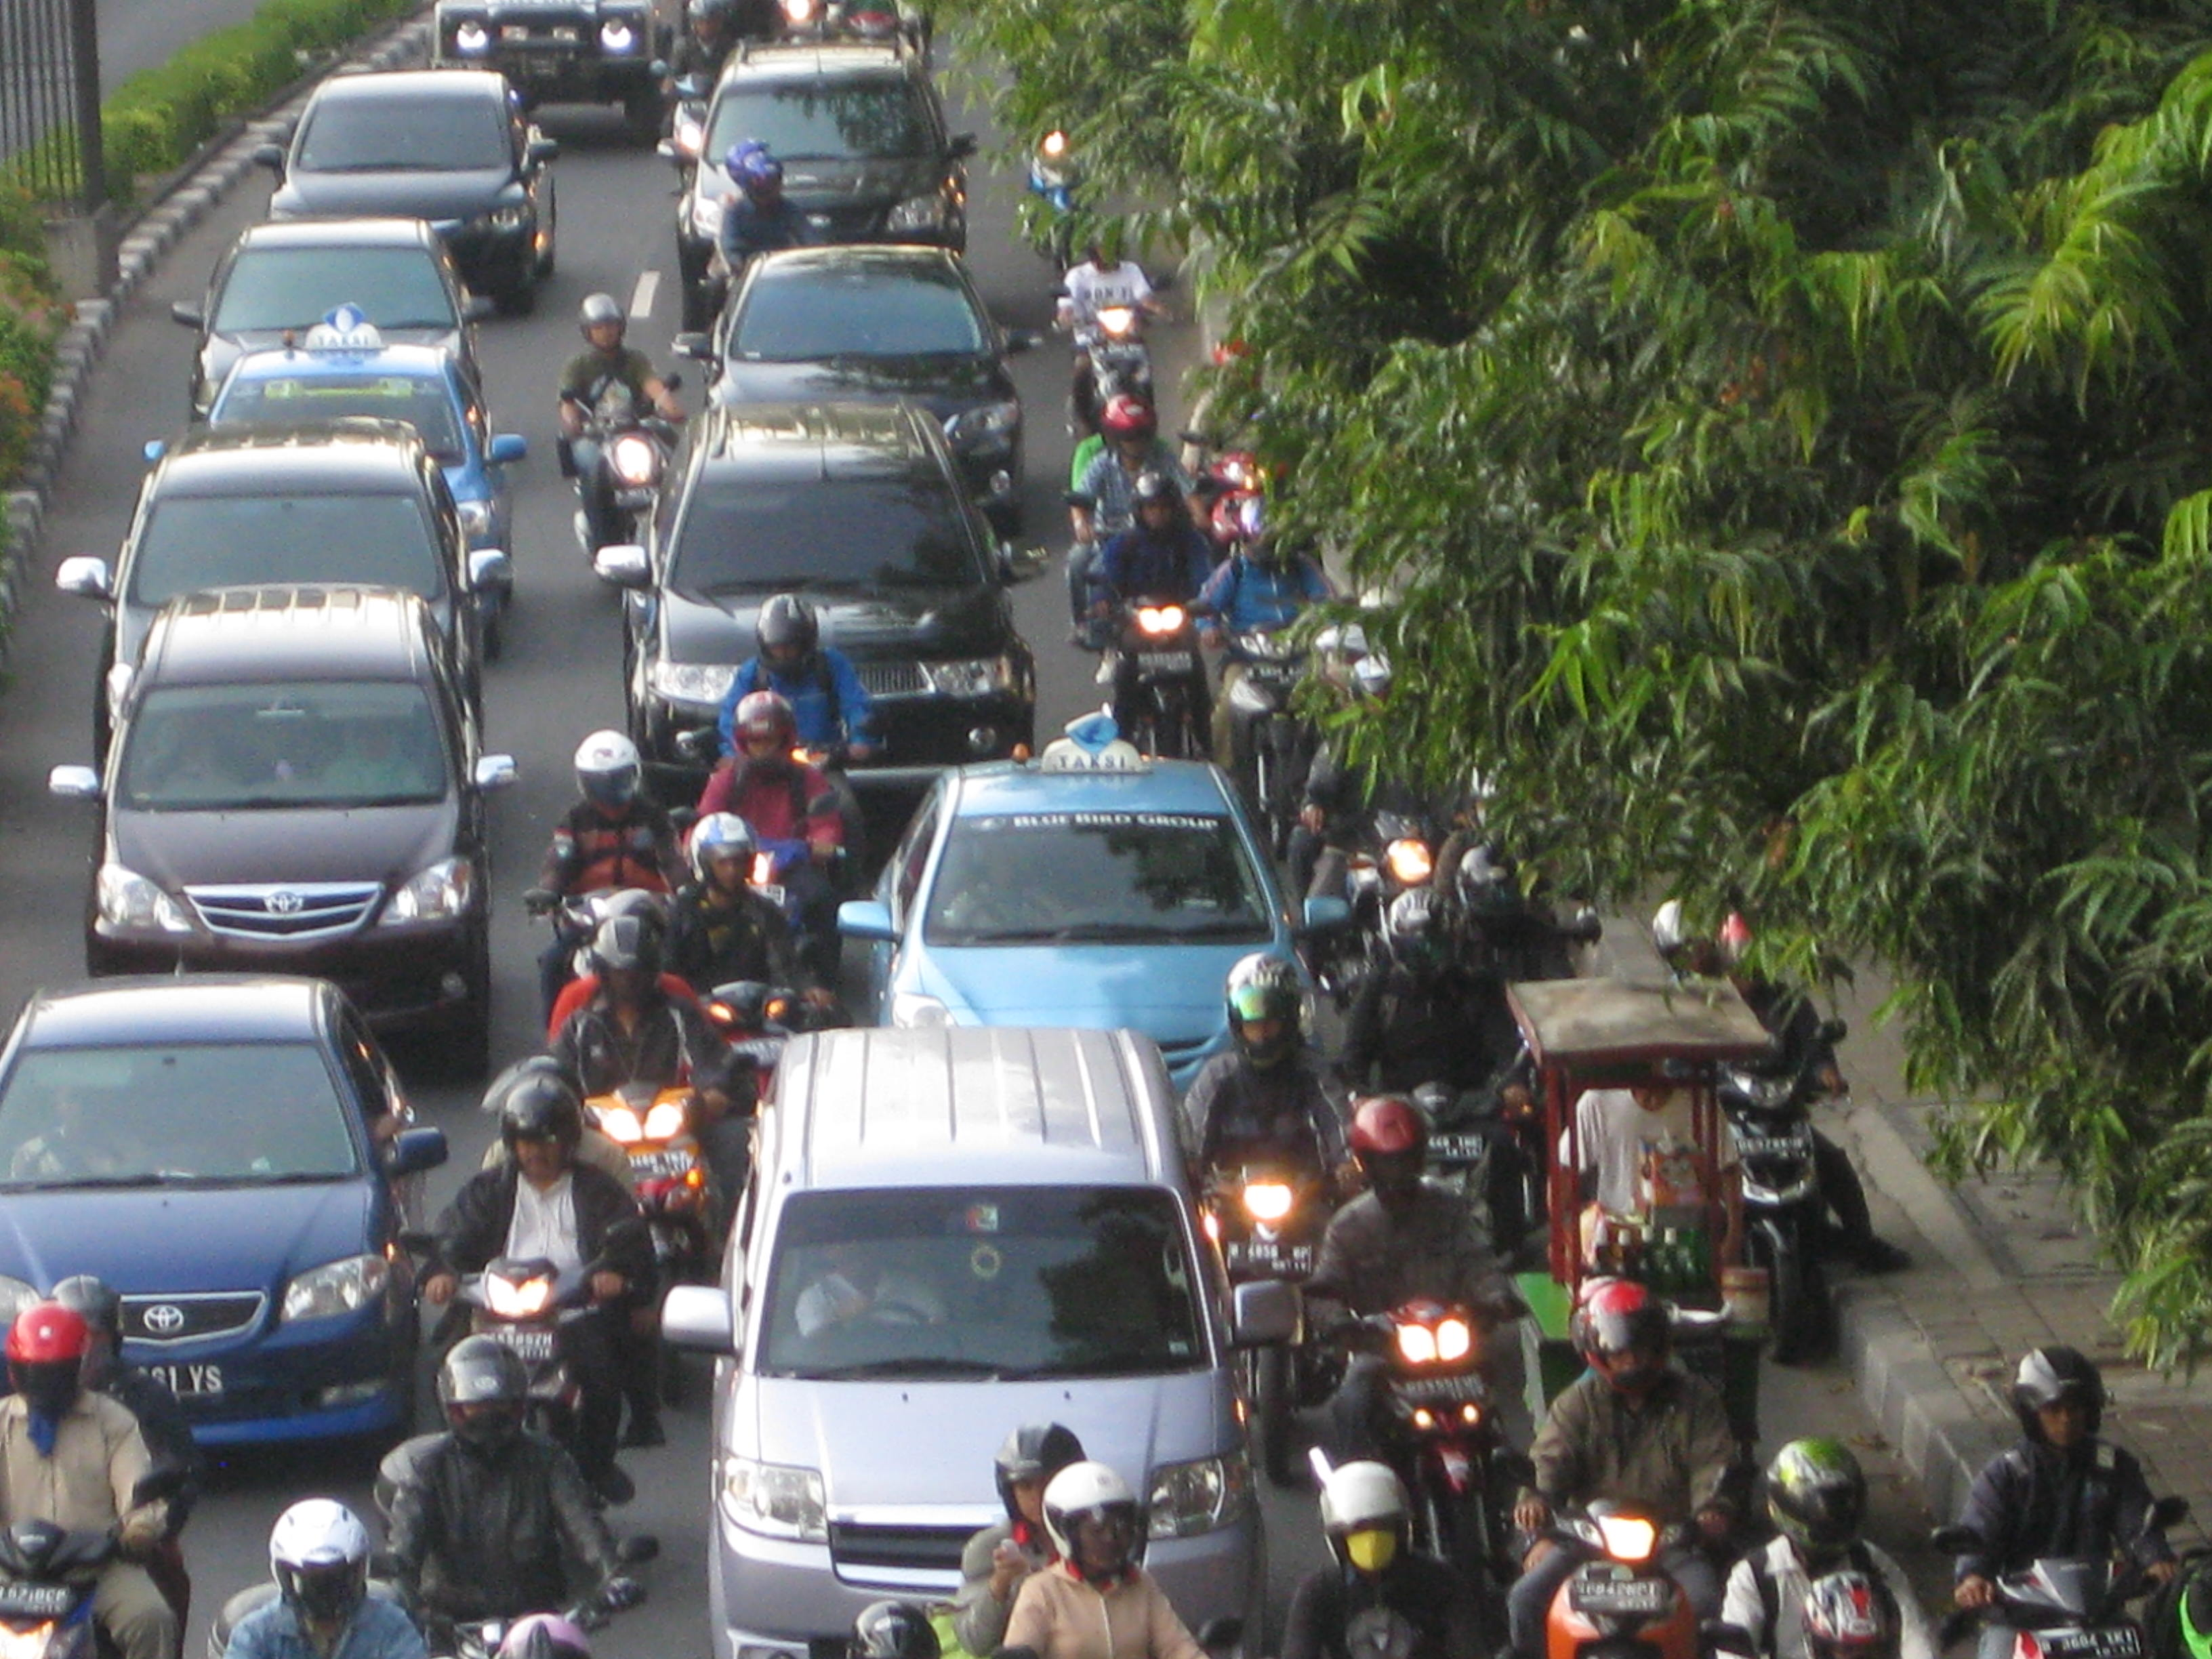 Indonesia Traffic Jam Name For a Traffic Jam